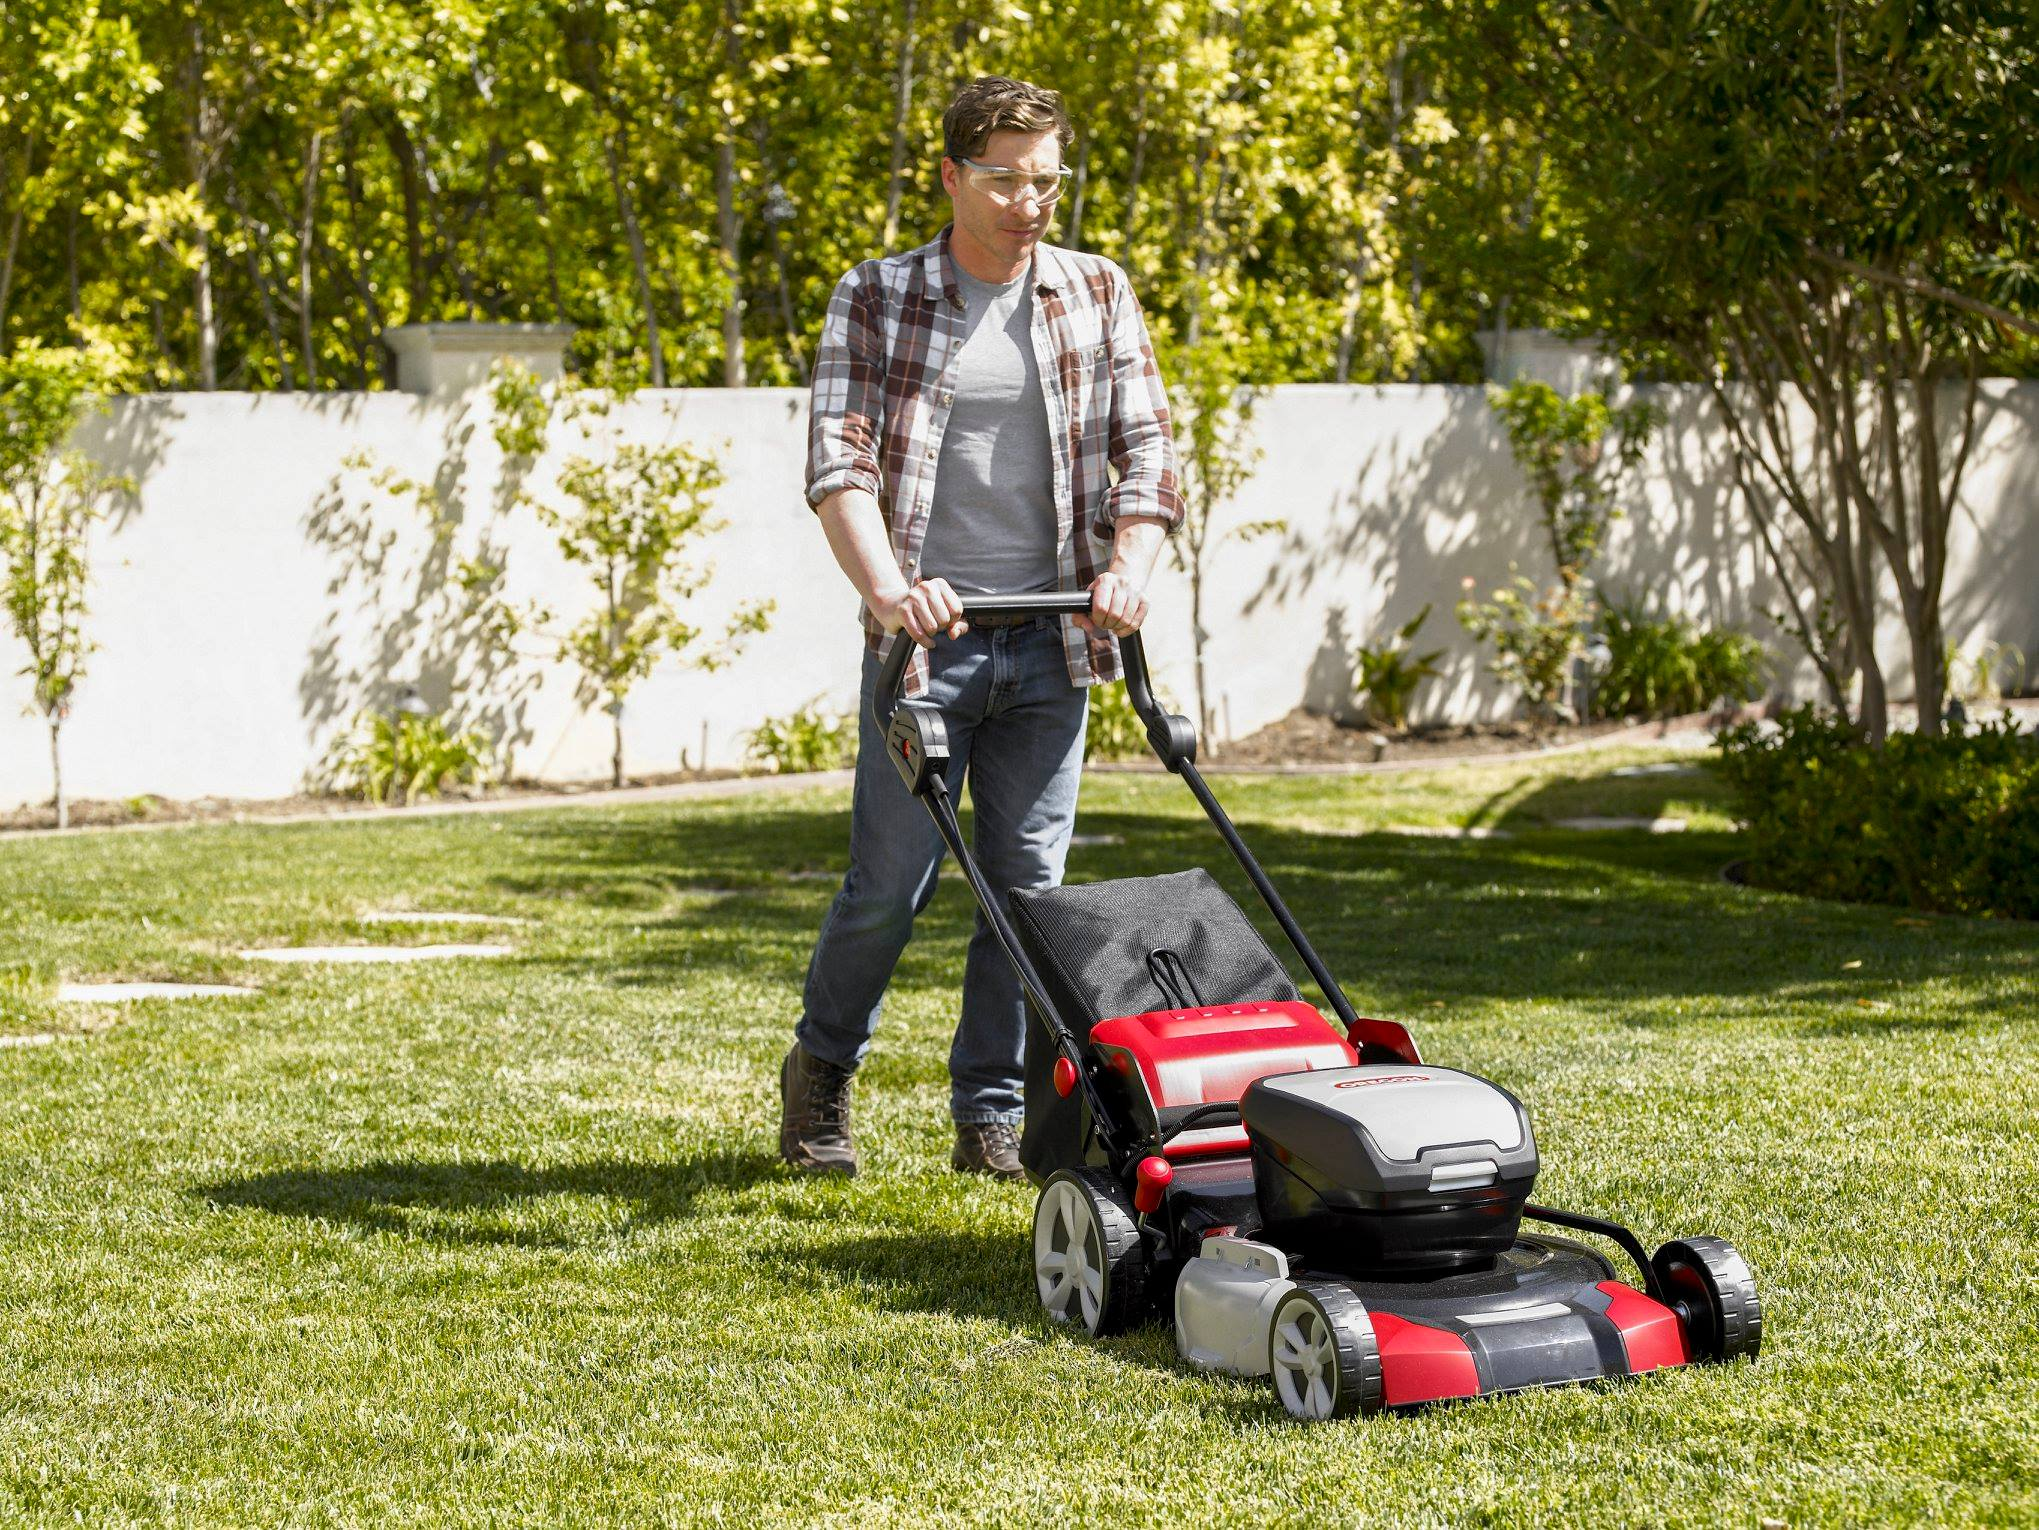 Man mowing lawn with a Toro® Walk Behind mower